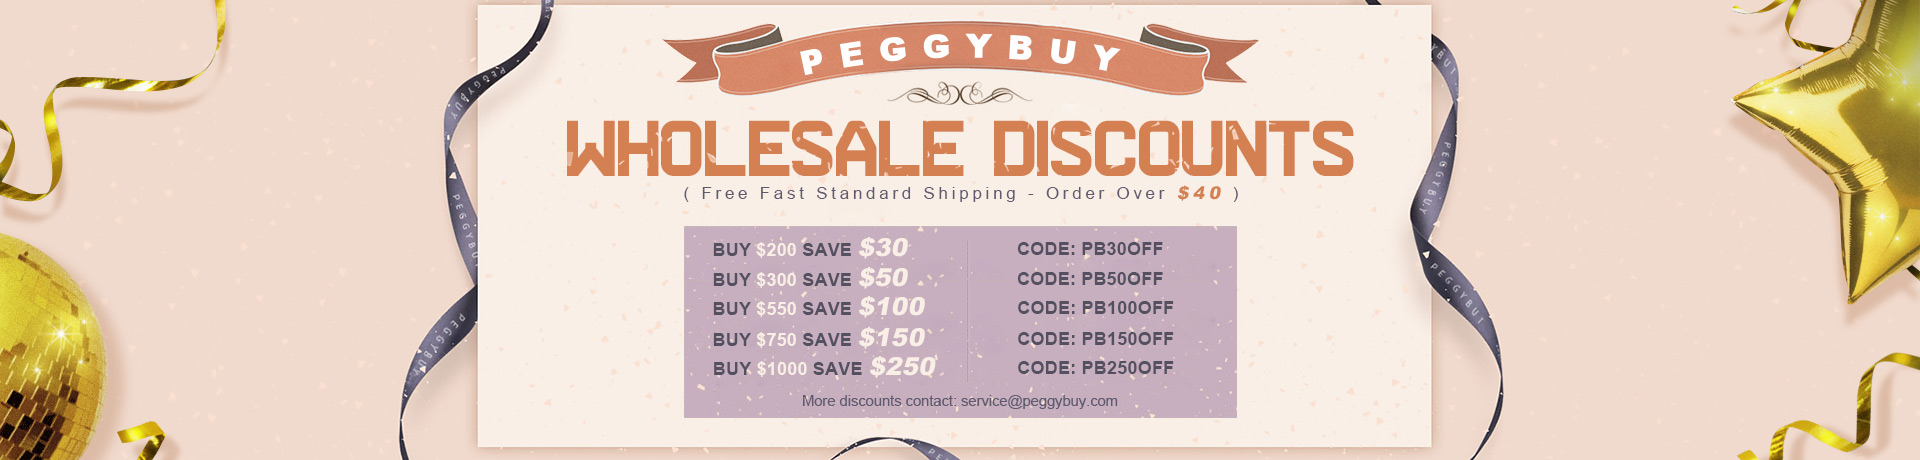 Sitewide Wholesale Discount